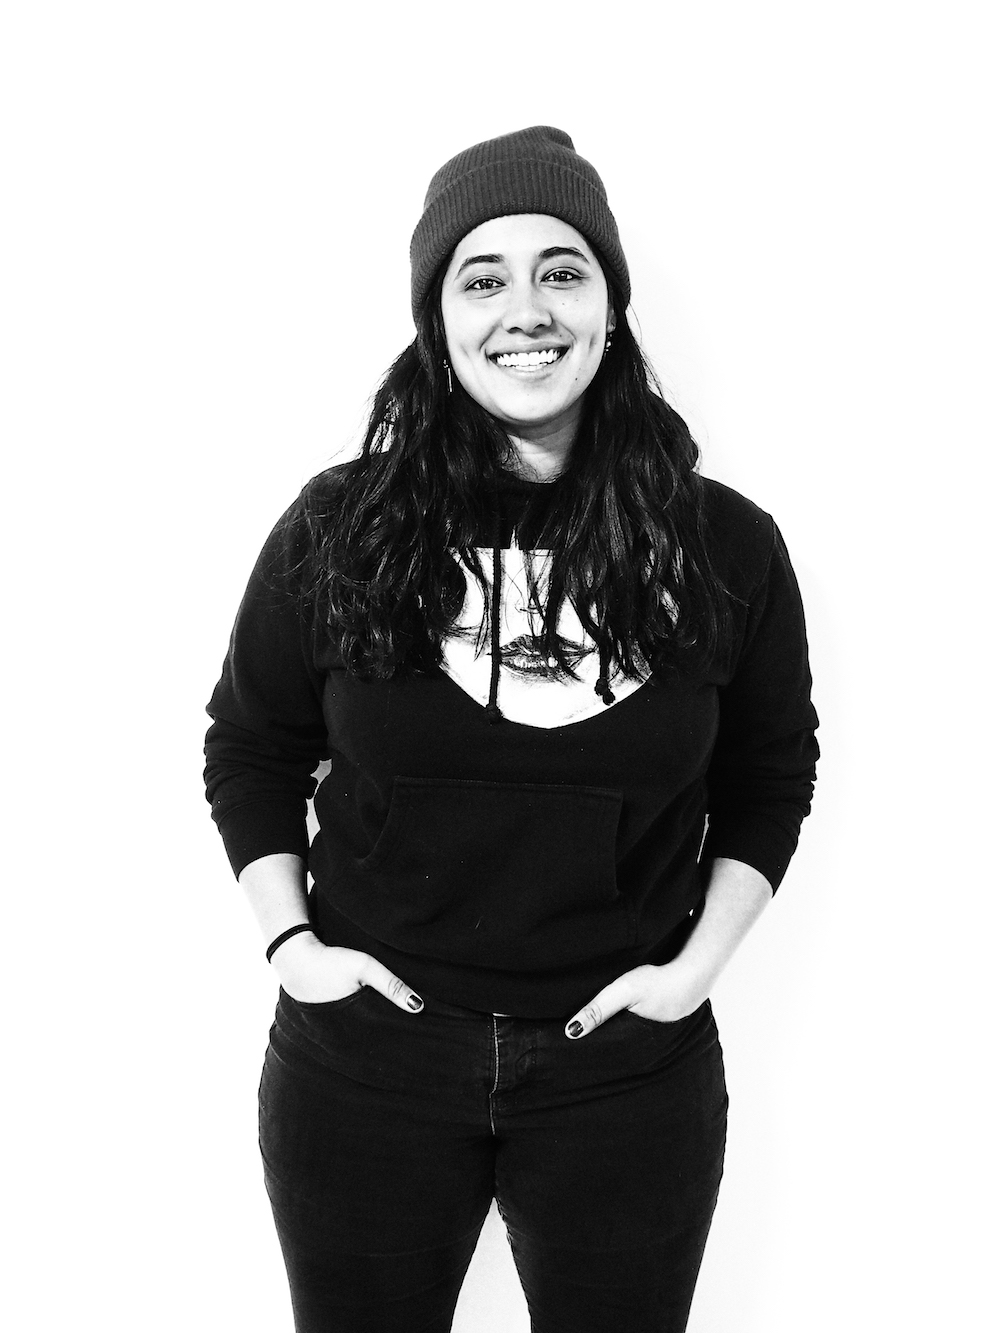 Josette Matoto - Mixed CohortJosette Matoto is a visual artist living in Washington, DC. Her work is focused on her queer identity, environmental justice, uplifting marginalized voices, and injecting humor wherever she can. She has never said no to pizza.Instagram: @josettematoto